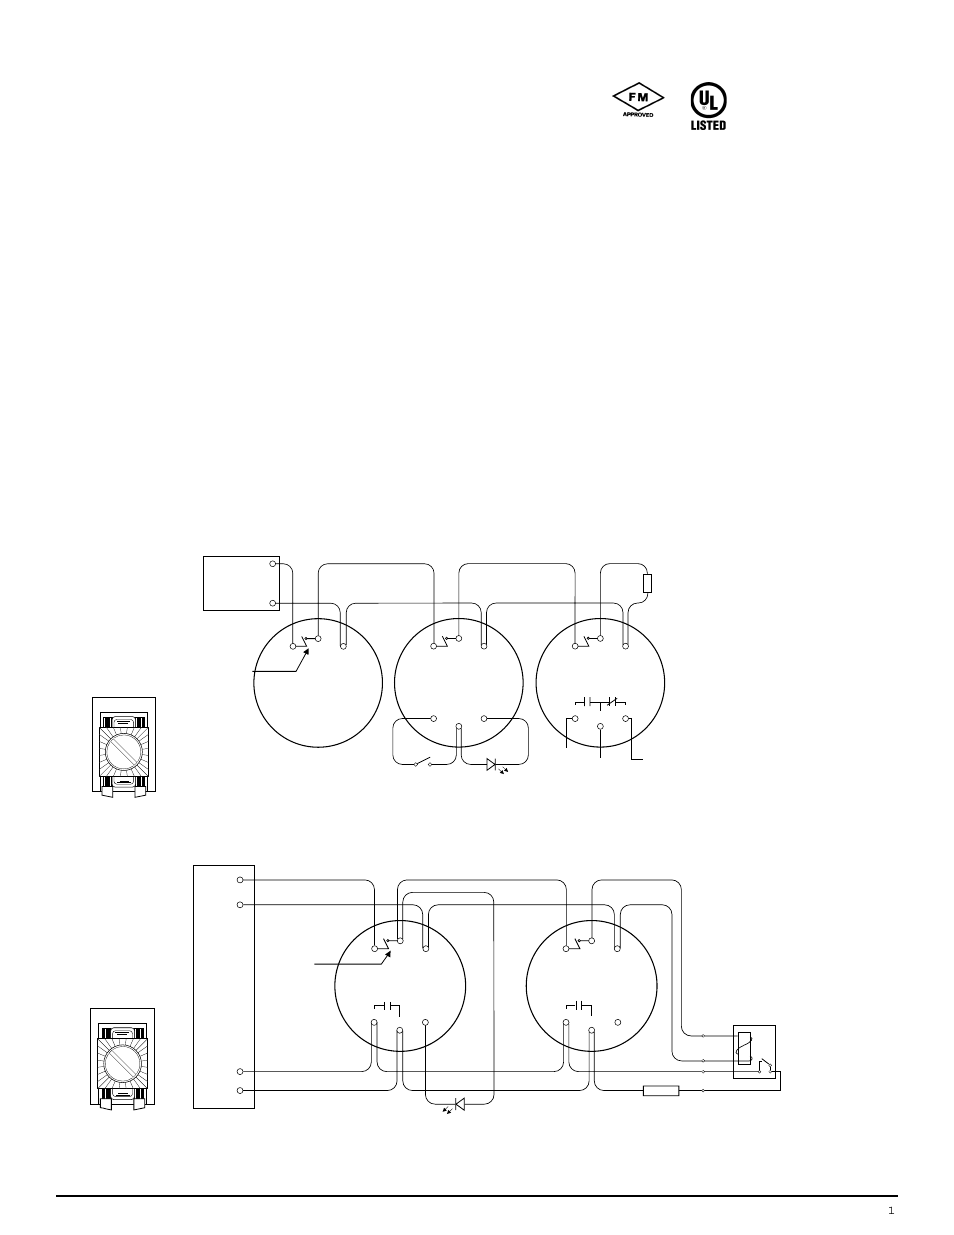 Edwards Signaling ESL 700 SERIES User Manual | 4 pages on smoke alarm beeping, fire smoke damper control diagram, smoke alarm safety, smoke alarm lights, smoke alarm battery replacement, smoke alarm clip art, smoke alarm batteries, smoke alarm circuit, smoke alarm symbol, smoke damper wiring-diagram, smoke alarm installation, smoke alarm wire, smoke alarm system, smoke detector diagram, smoke alarm horn, 4 wire sensor diagram, smoke alarm placement, smoke alarm cover, smoke alarm connector, smoke alarm relay,